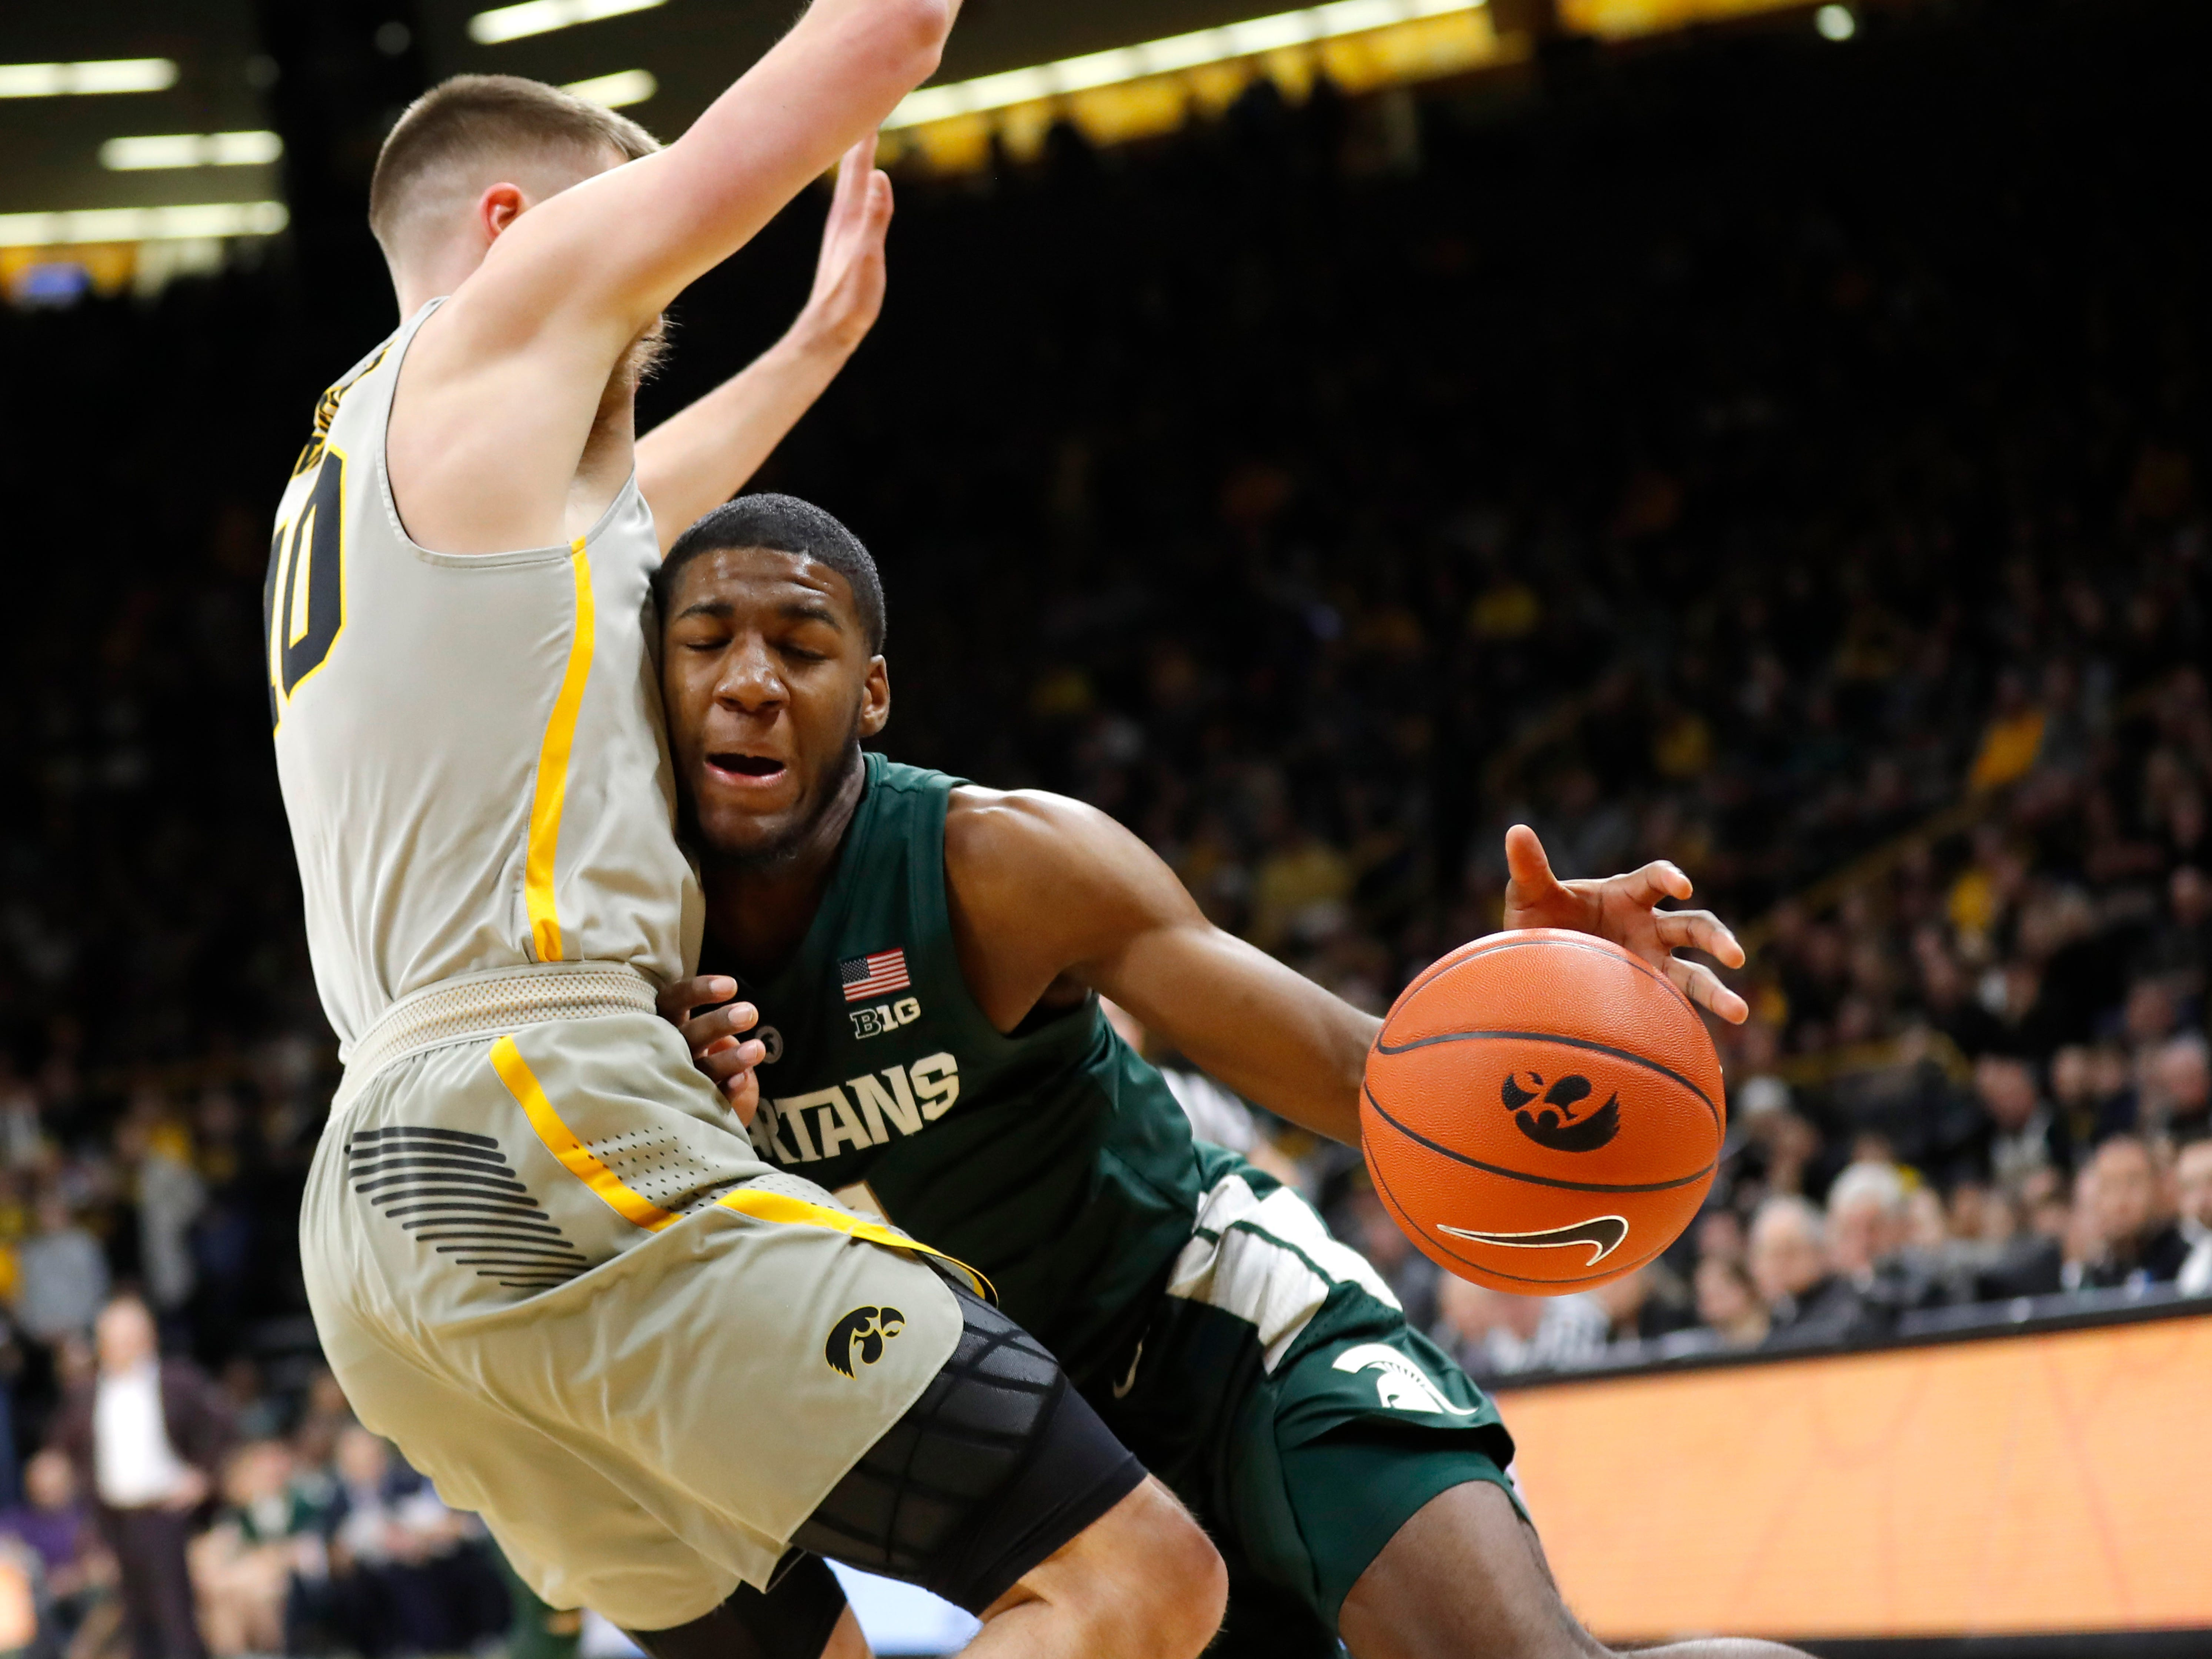 Michigan State forward Aaron Henry drives against Iowa guard Joe Wieskamp during the first half Thursday, Jan. 24, 2019, in Iowa City, Iowa.